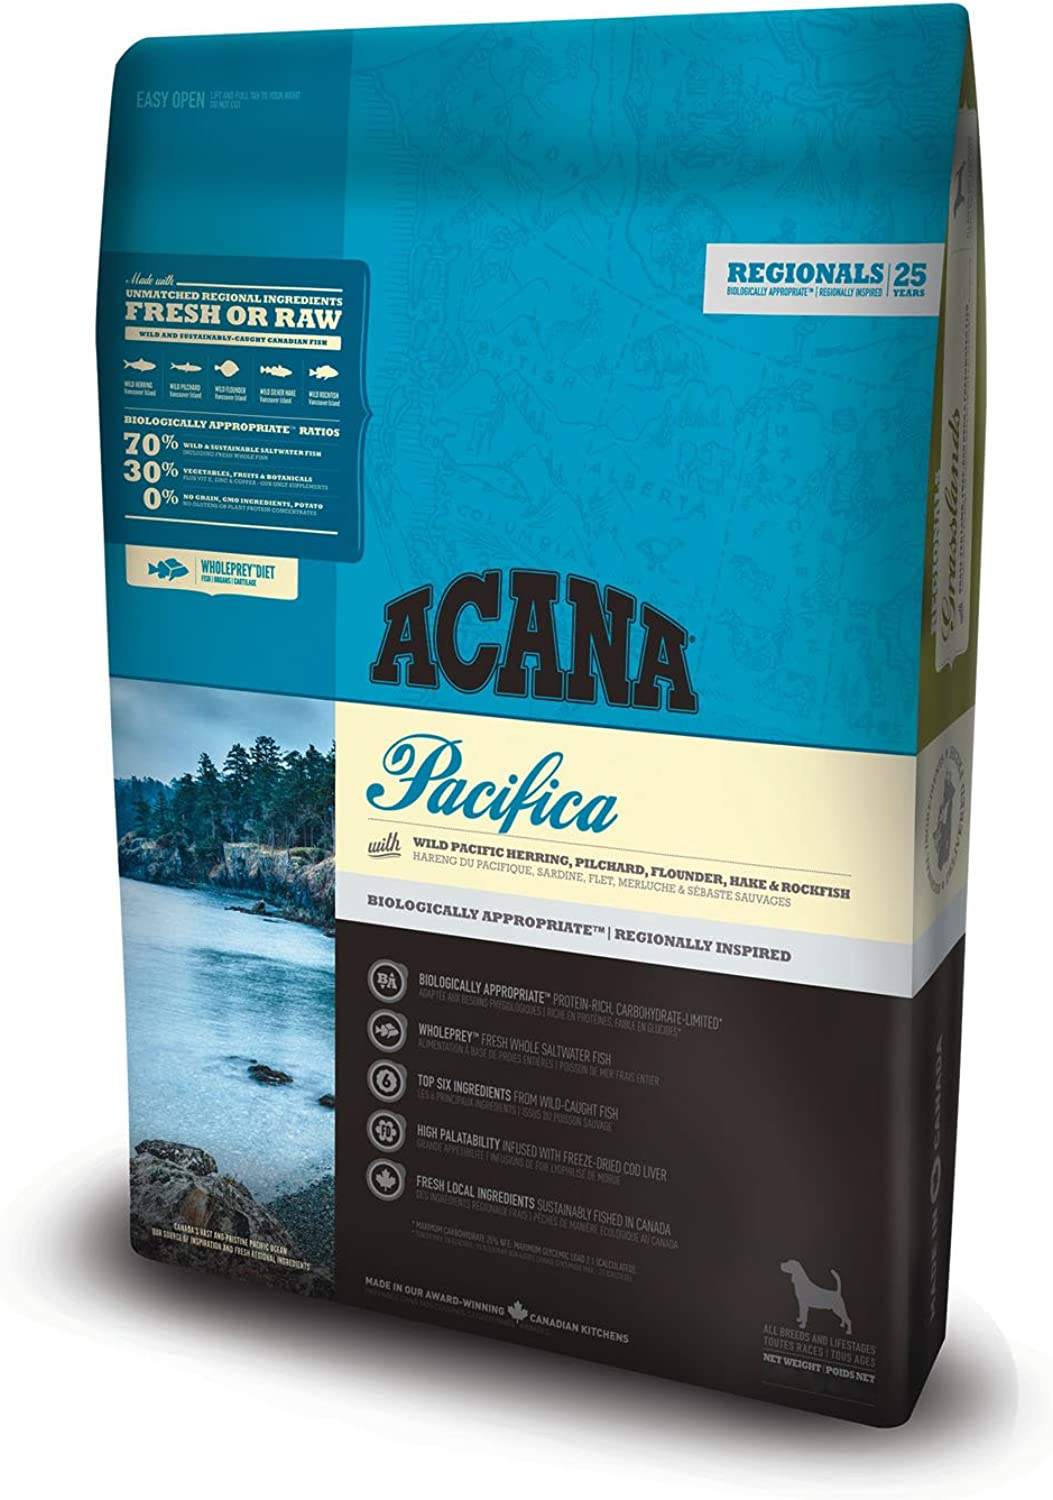 Acana Pacifica Dog Food, 11.4 kg